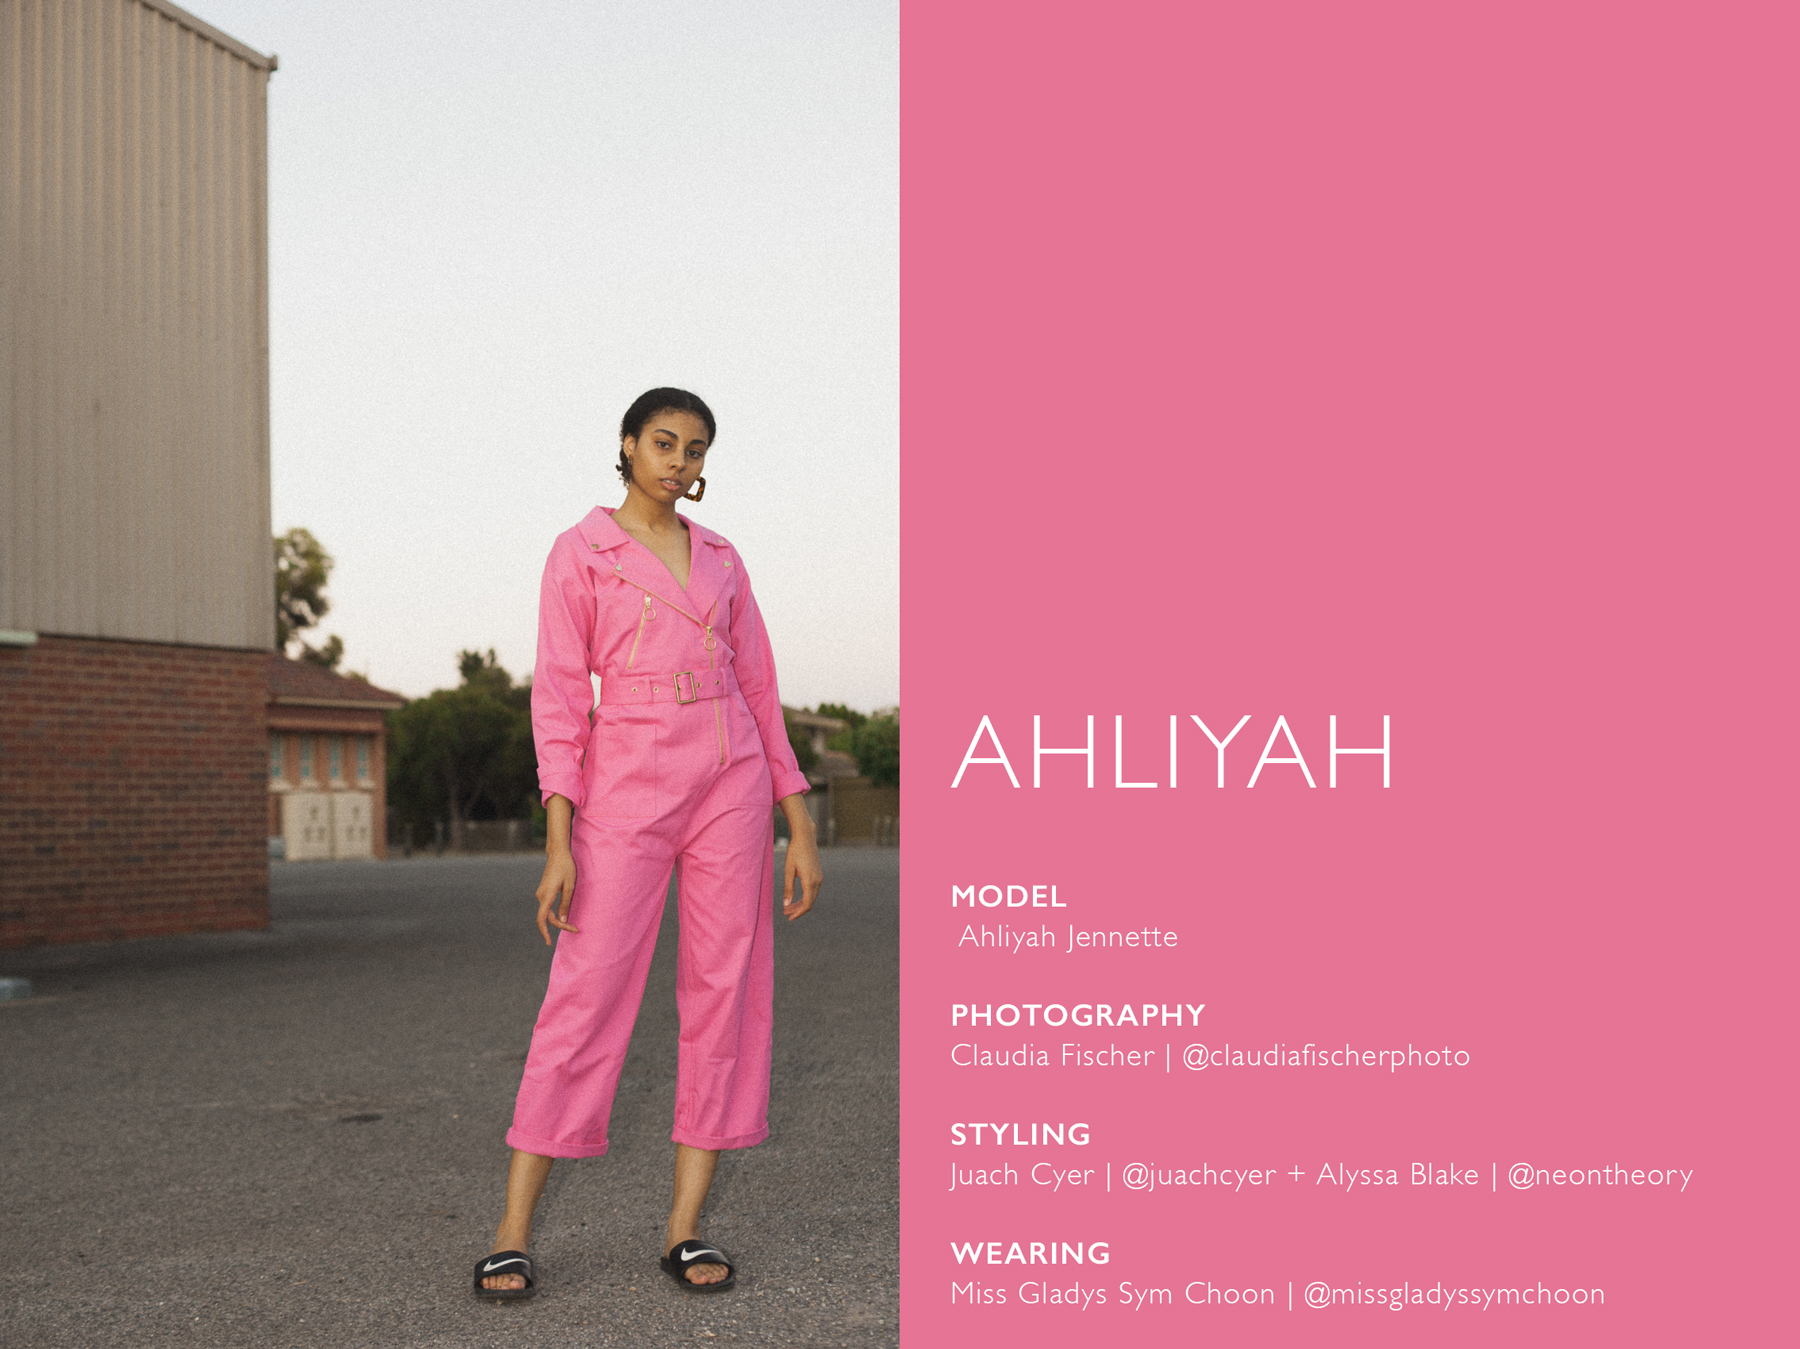 ahliyah-byclaudiafischer-cover2.jpg